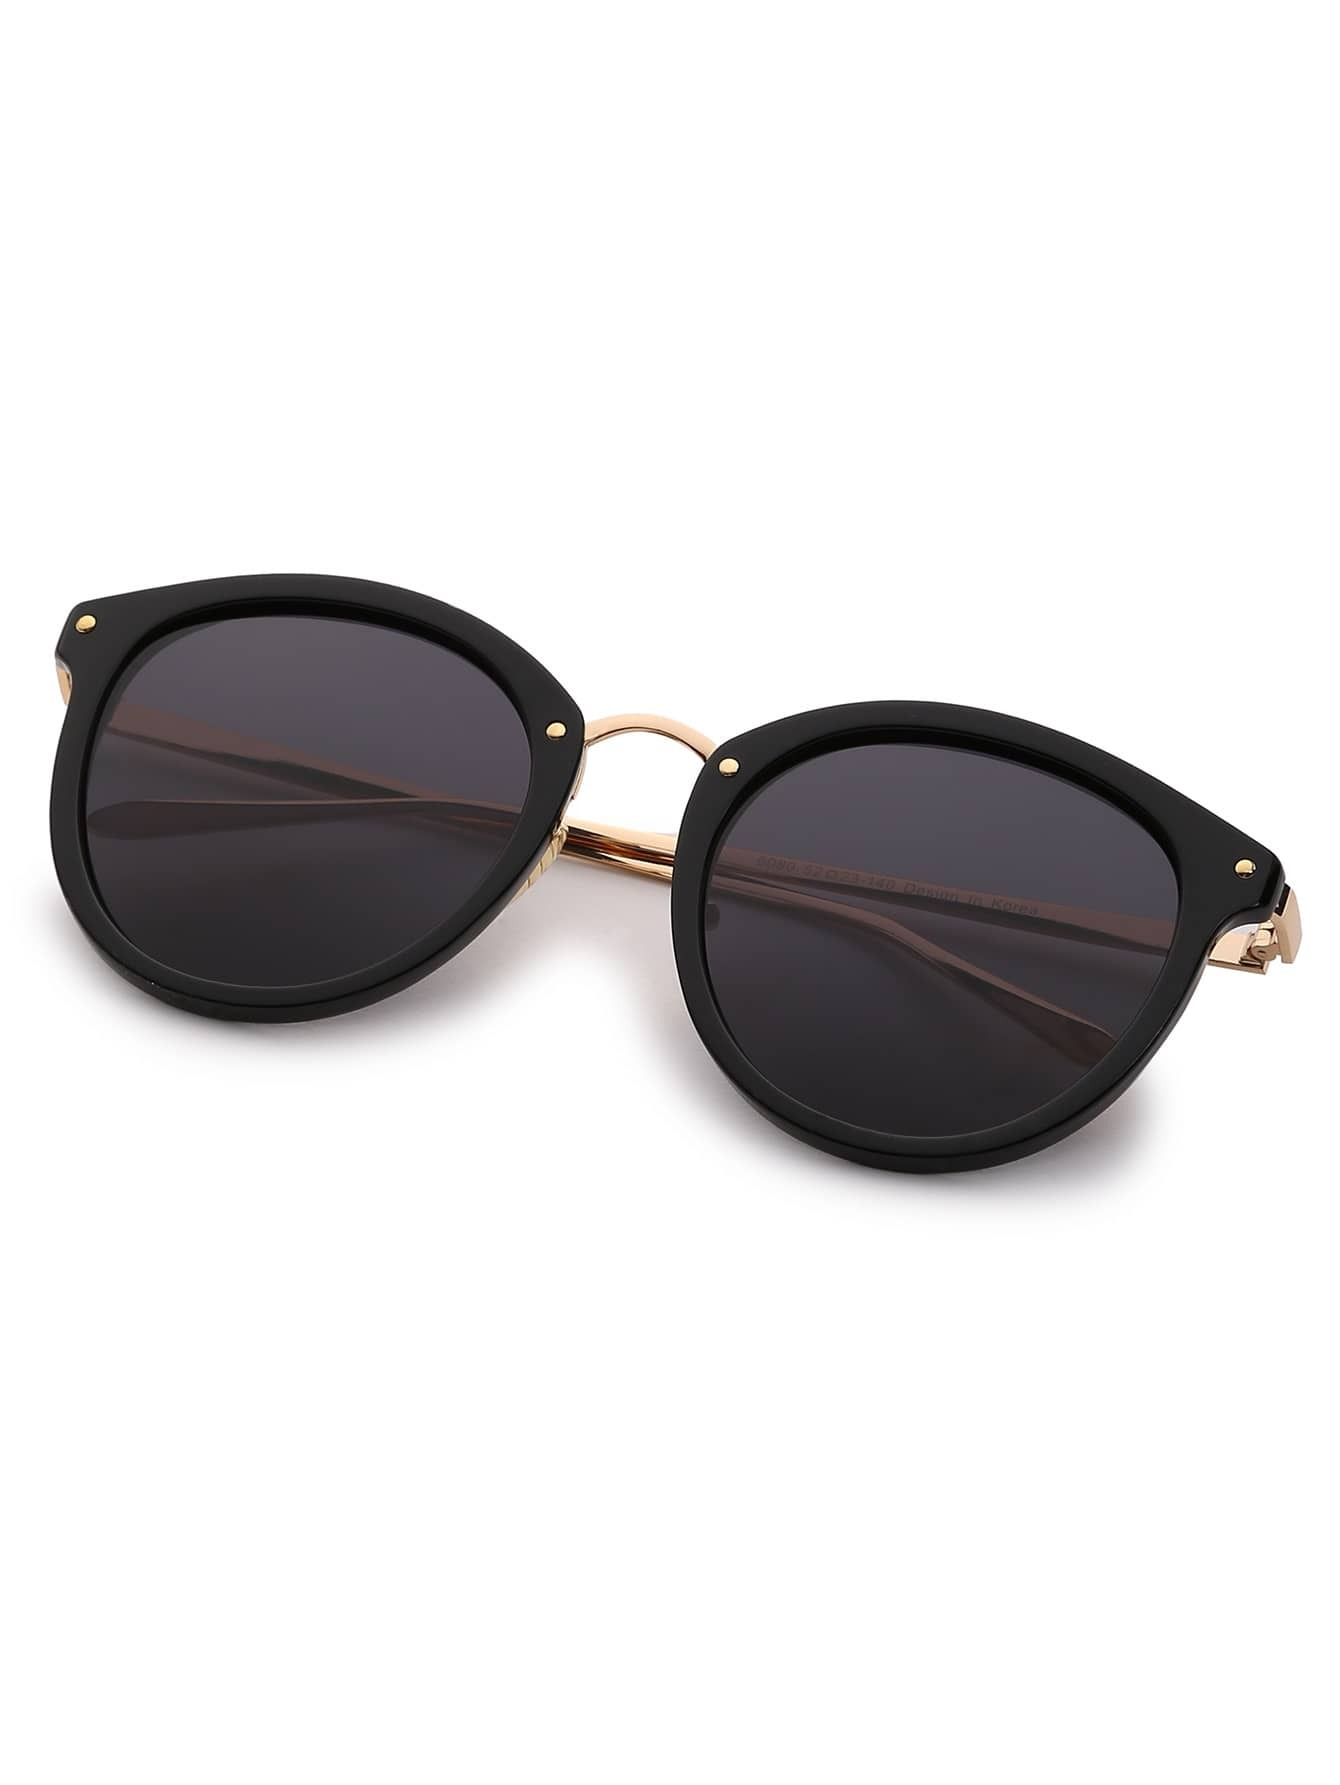 73788a370f Retro Cat Eye Sunglasses Black « Heritage Malta